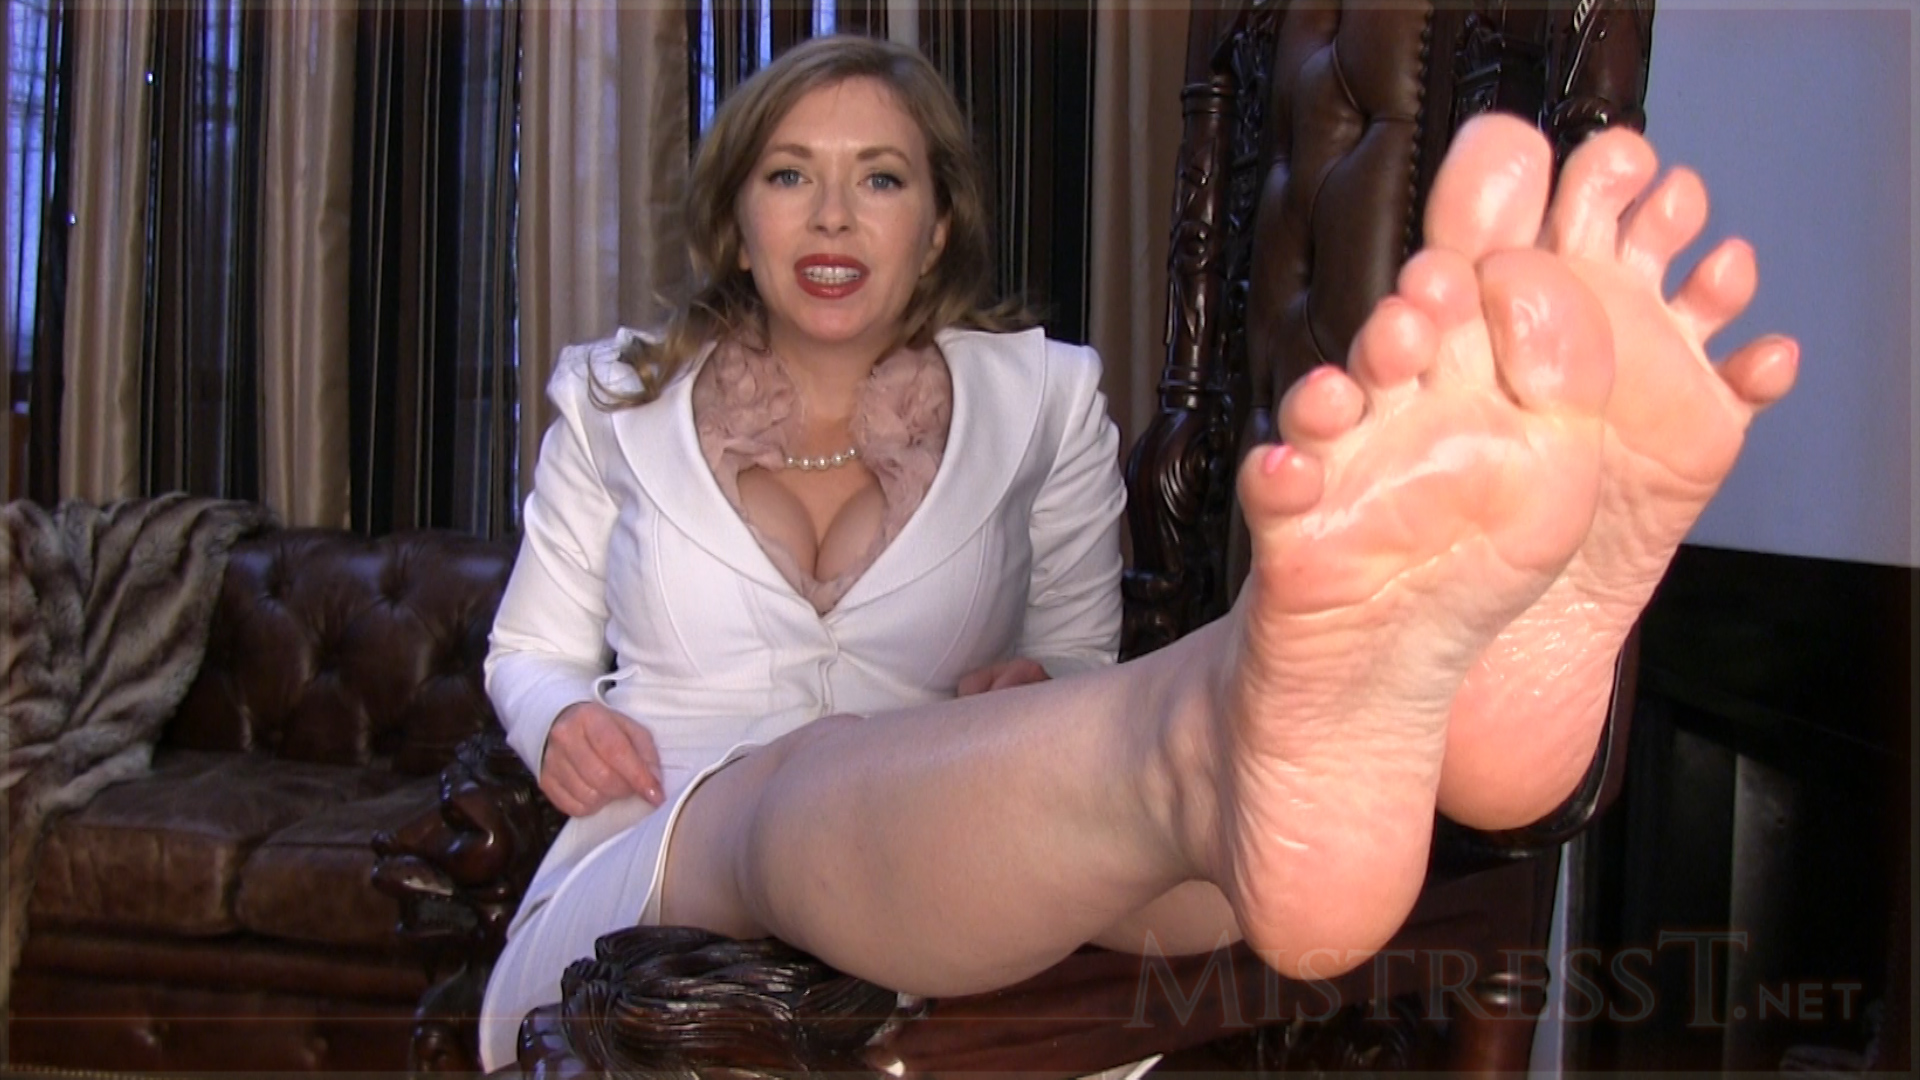 Asian Foot Worship Porn foot worship mistress t | free hot nude porn pic gallery